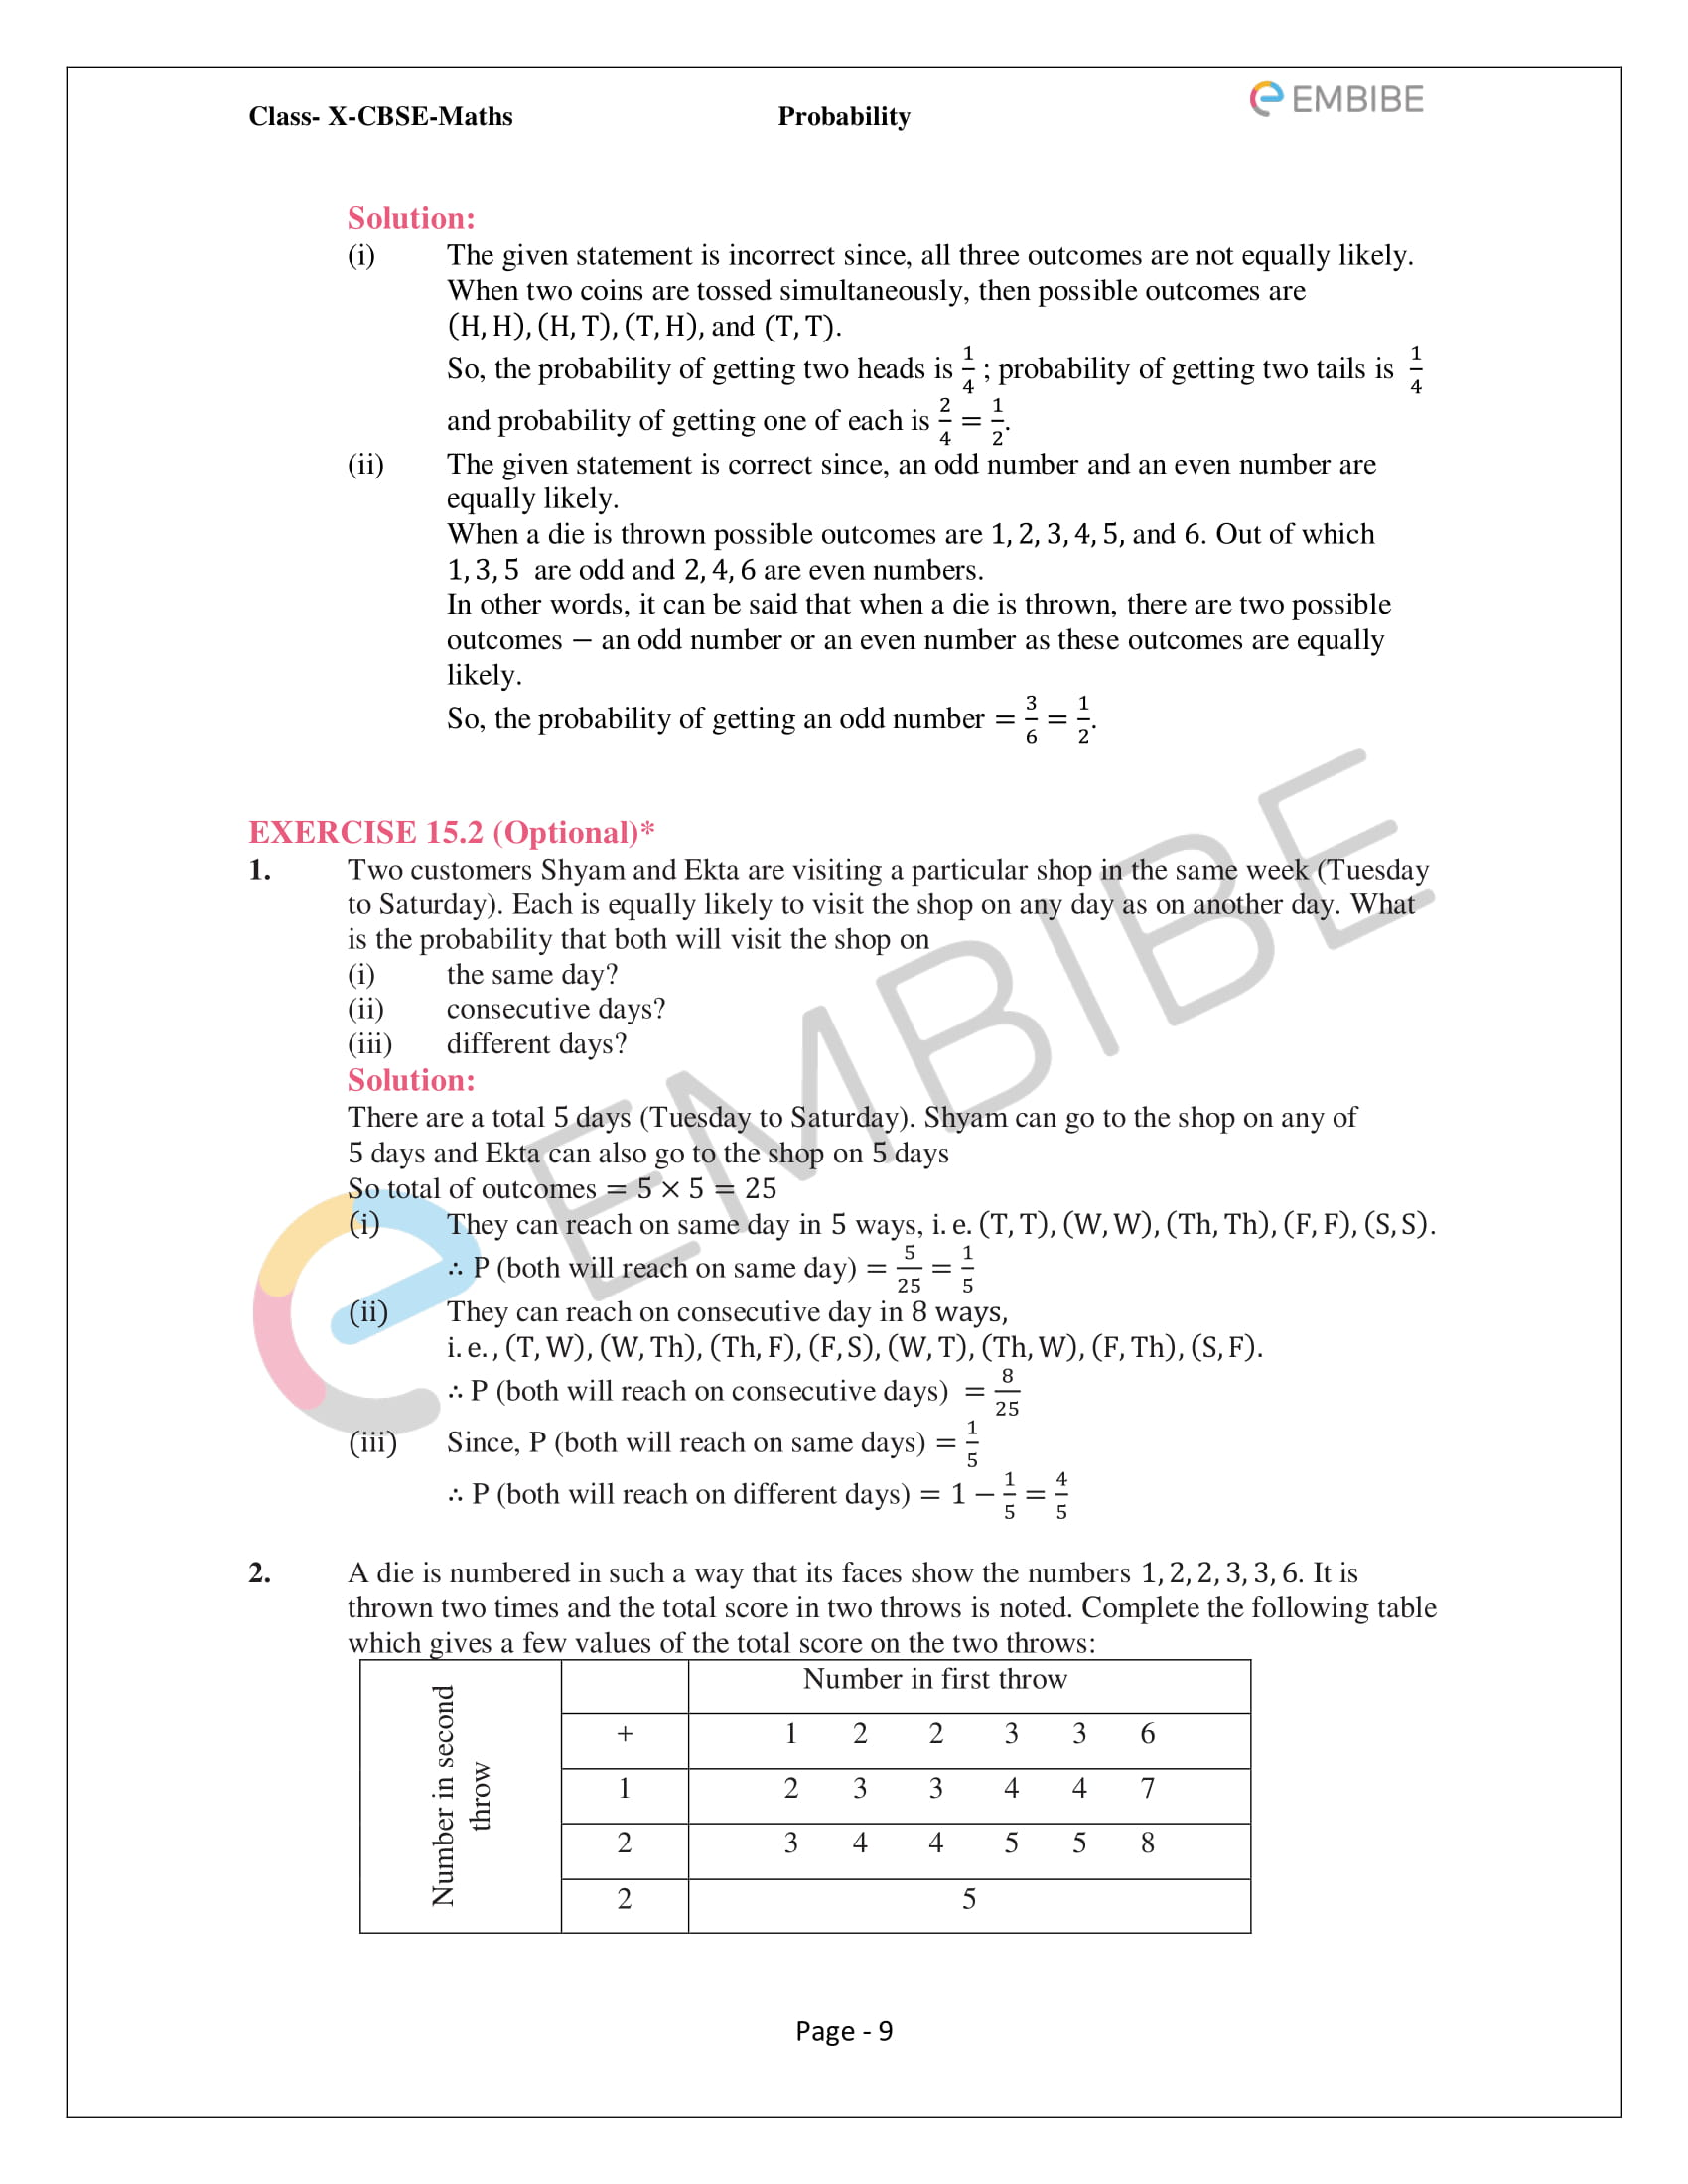 CBSE NCERT Solutions For Class 10 Maths Chapter 15 - Probability - 9